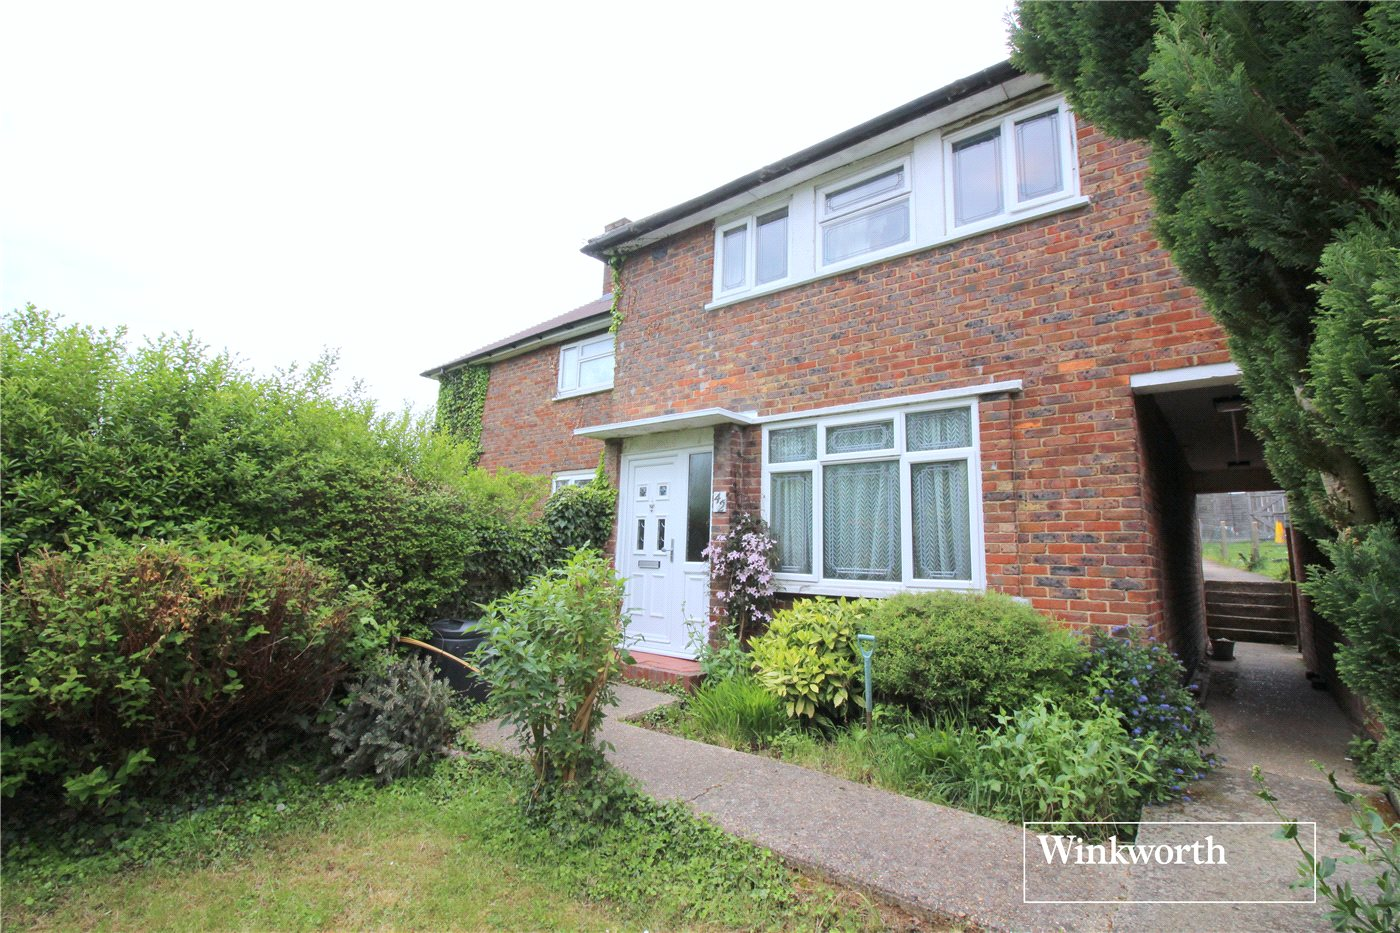 3 bedroom house for sale in borehamwood 28 images 3